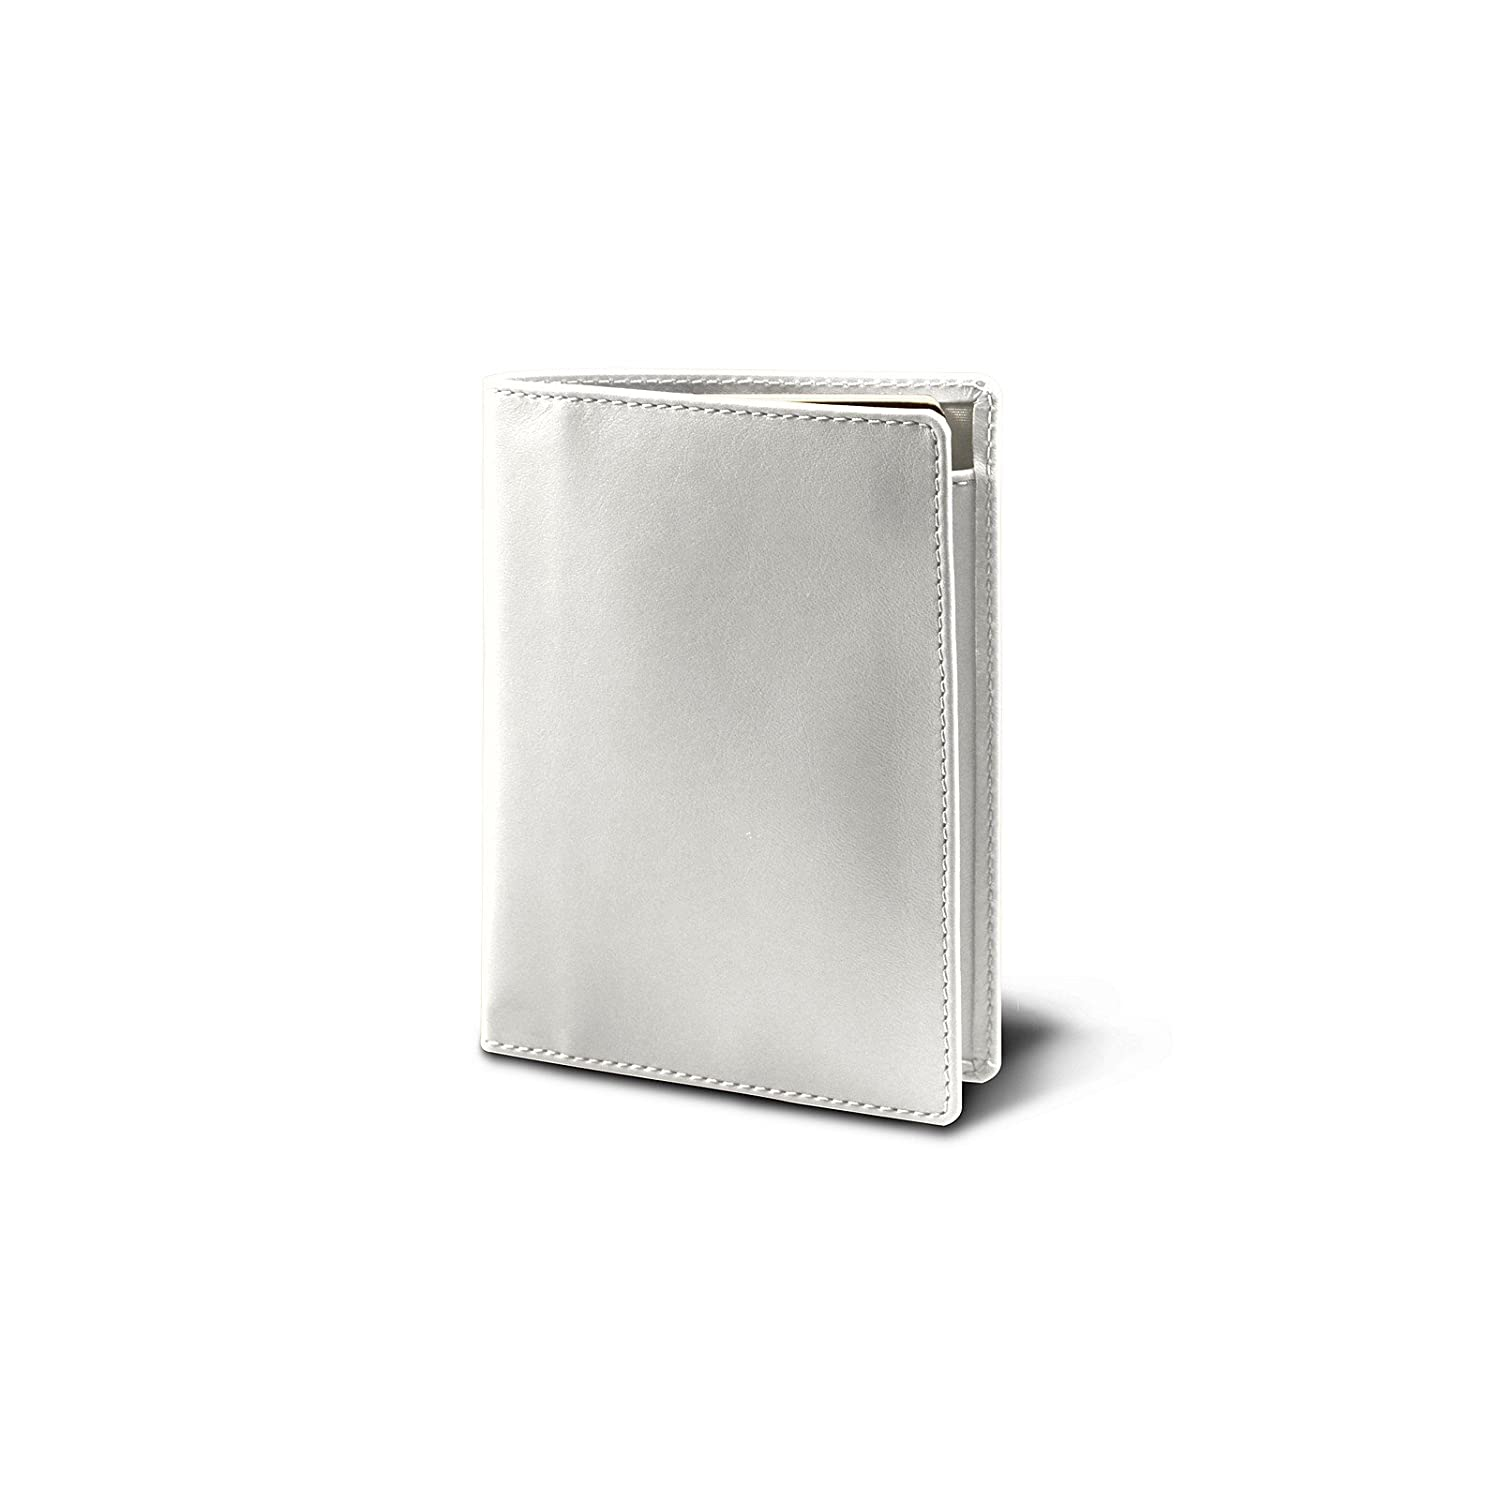 Lucrin Off-White Passport and Loyalty Card Holder Smooth Leather